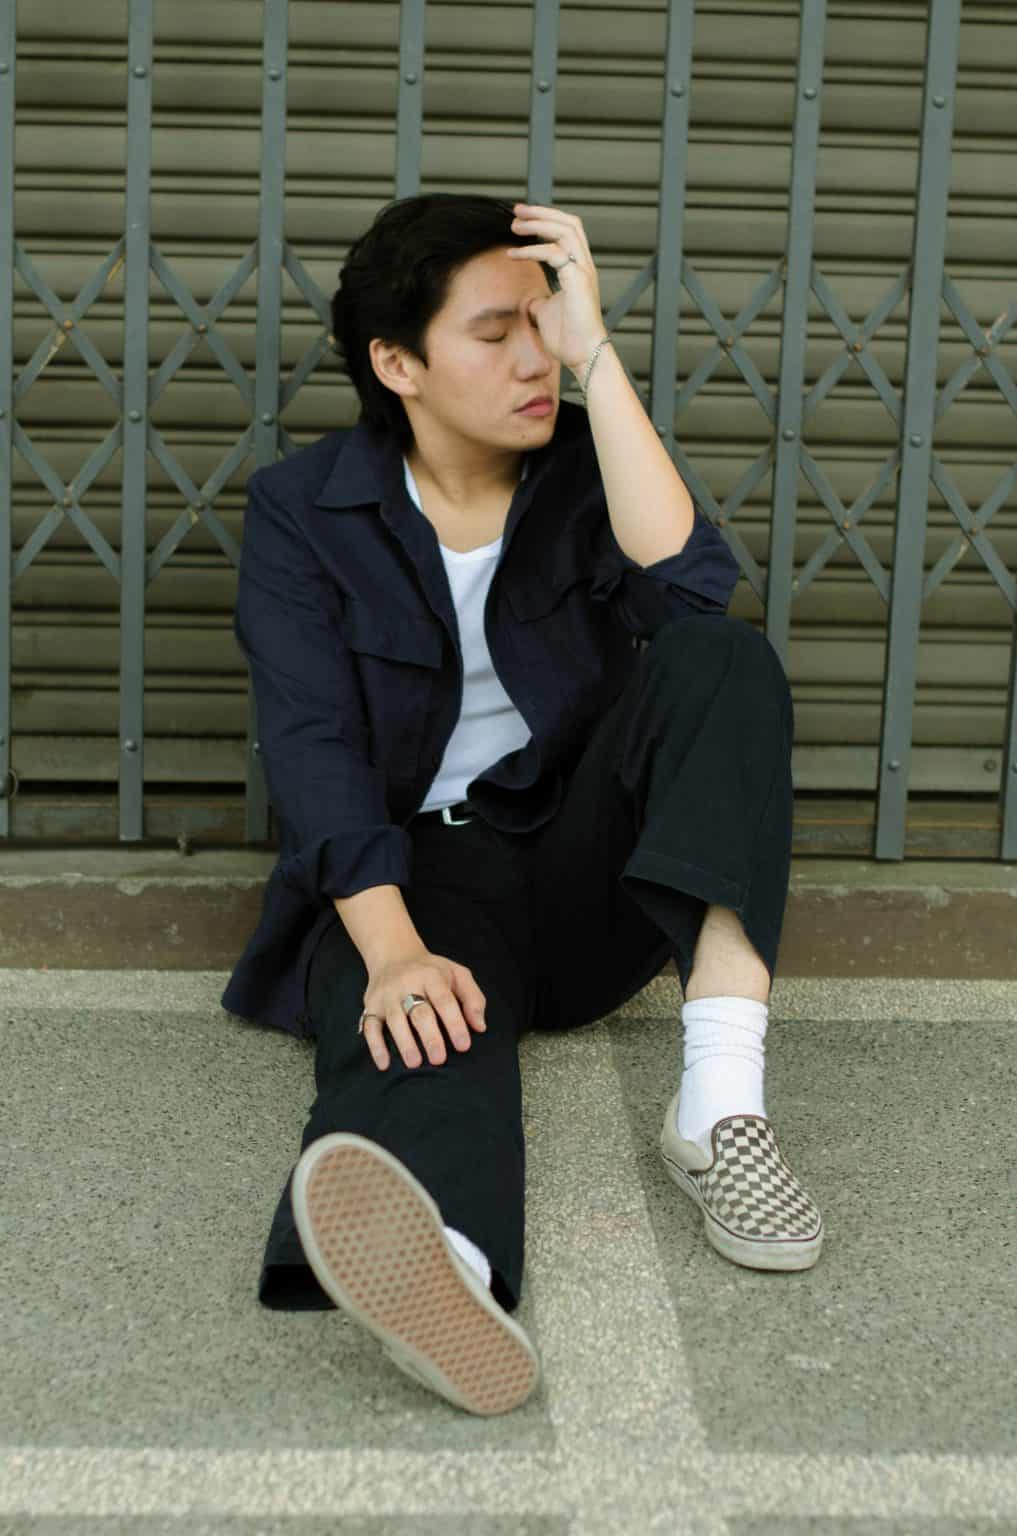 Young Asian man sitting on ground against fence hold head with eyes closed